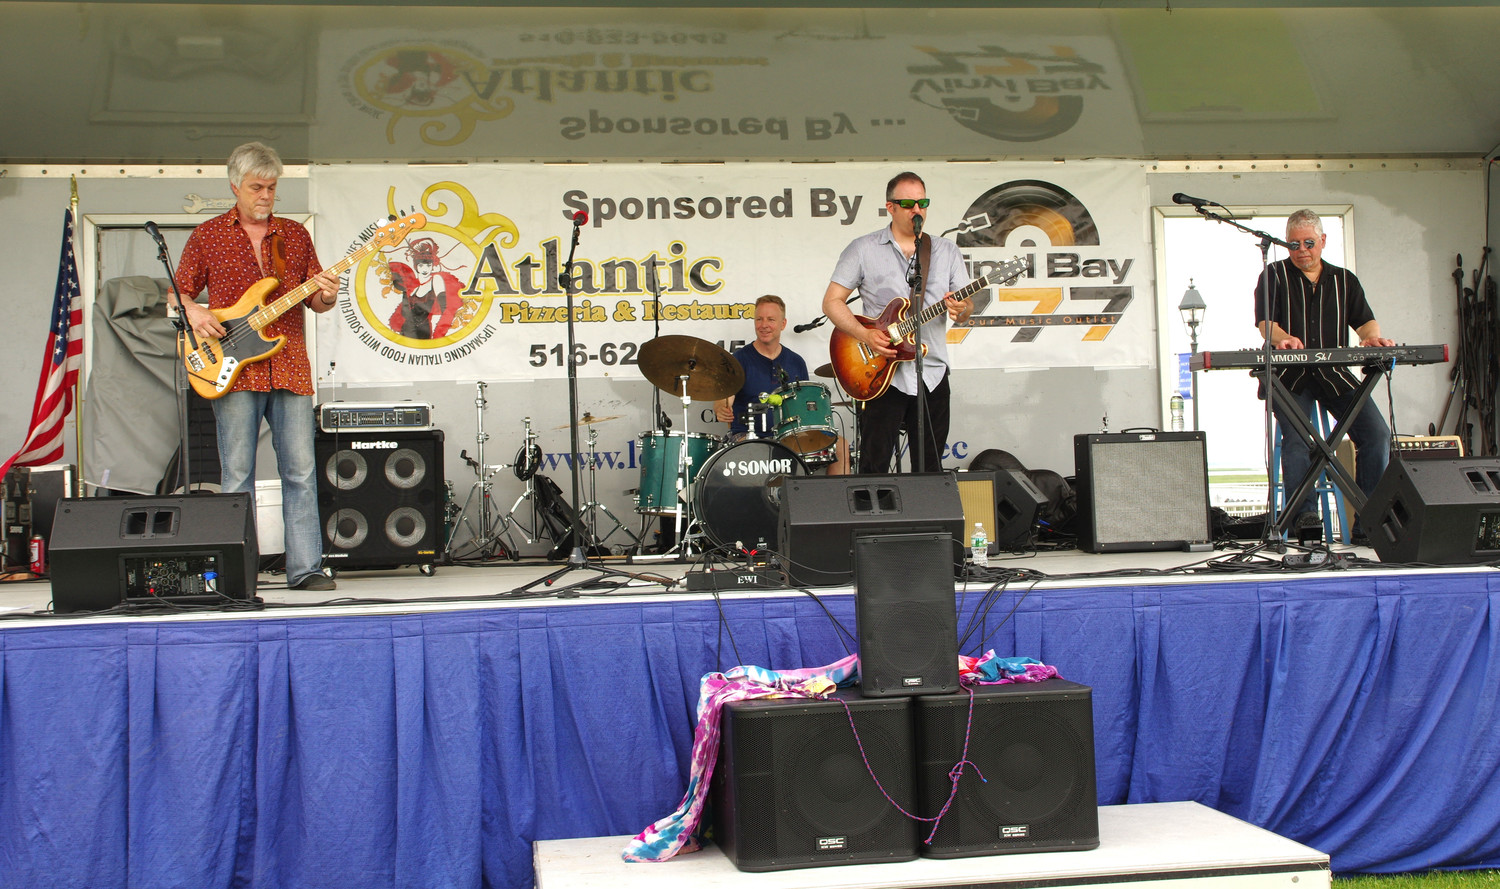 The Gary Seller Band played at the Nautical Mile Festival. John Aggesen, left, was on bass; Scot Foley, drums; Gary Seller, vocals; and Sal Dipasquale, keyboard.